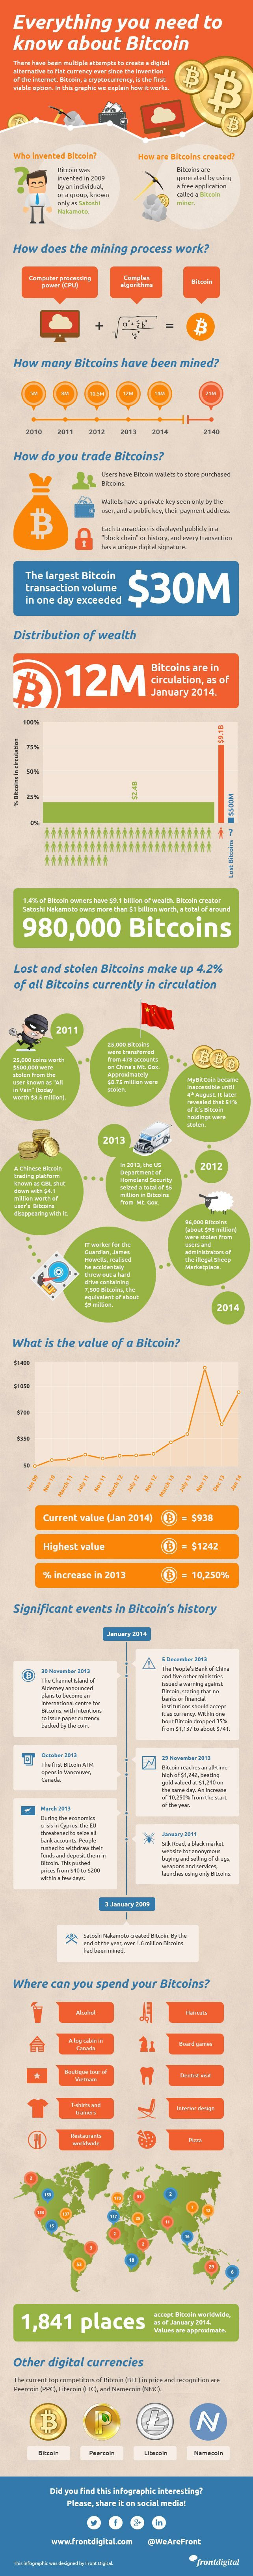 Everything You Need to Know About Bitcoins